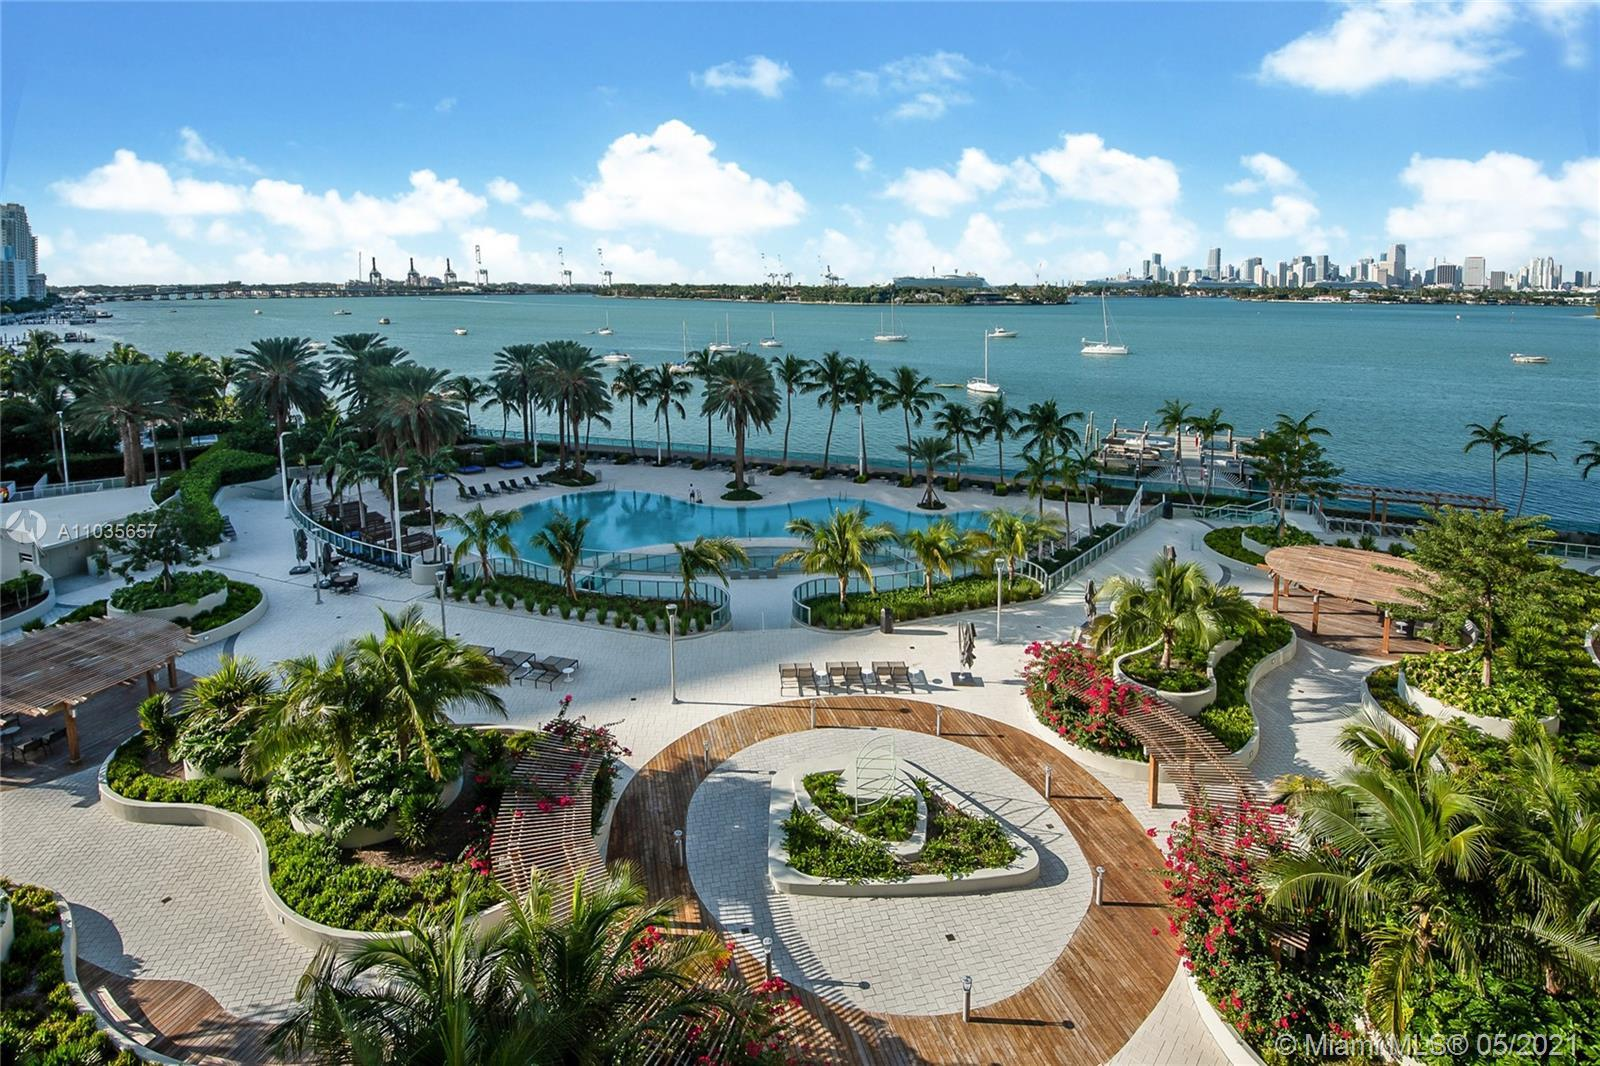 Located in the heart of South Beach. Renovated spacious 1/1 turn key at the Flamingo South Beach. Fu